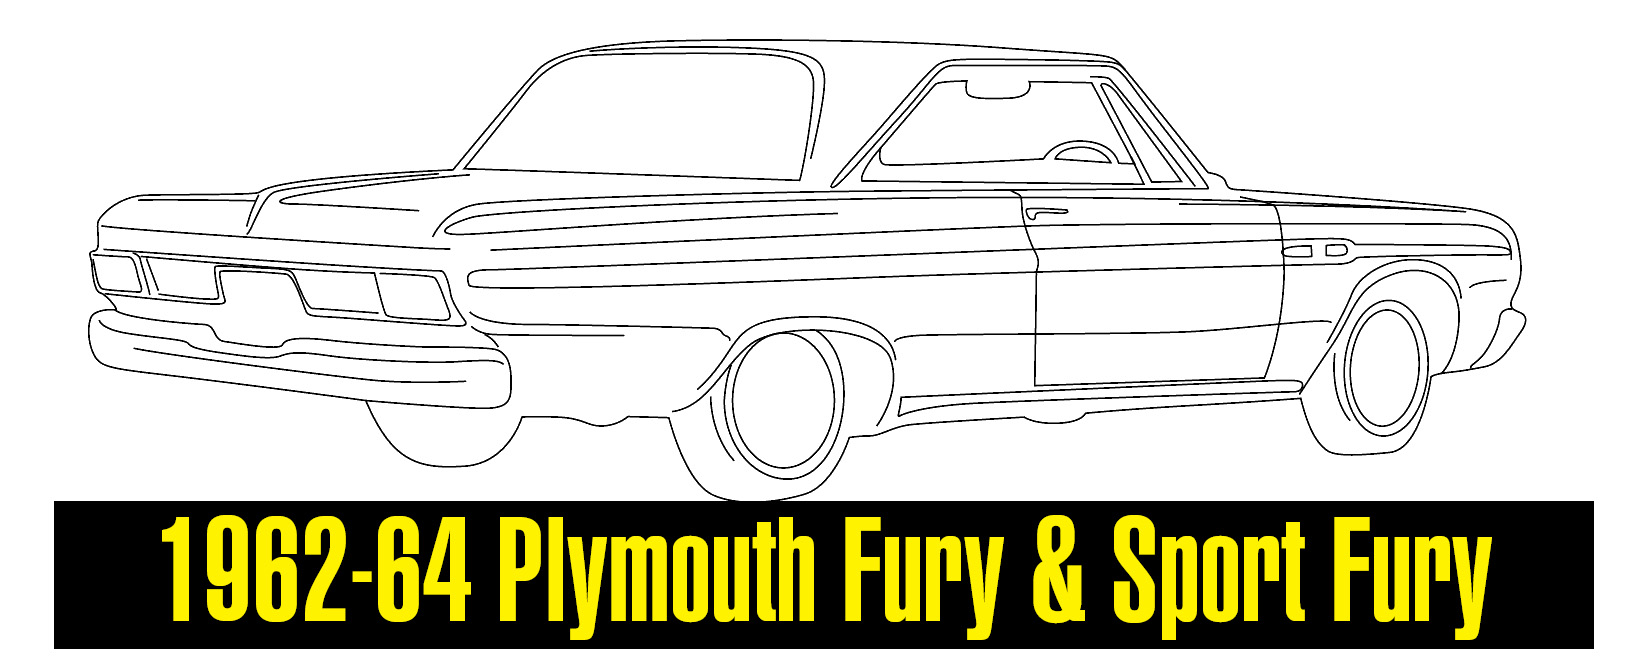 Classic_Plymouth_62_Fury